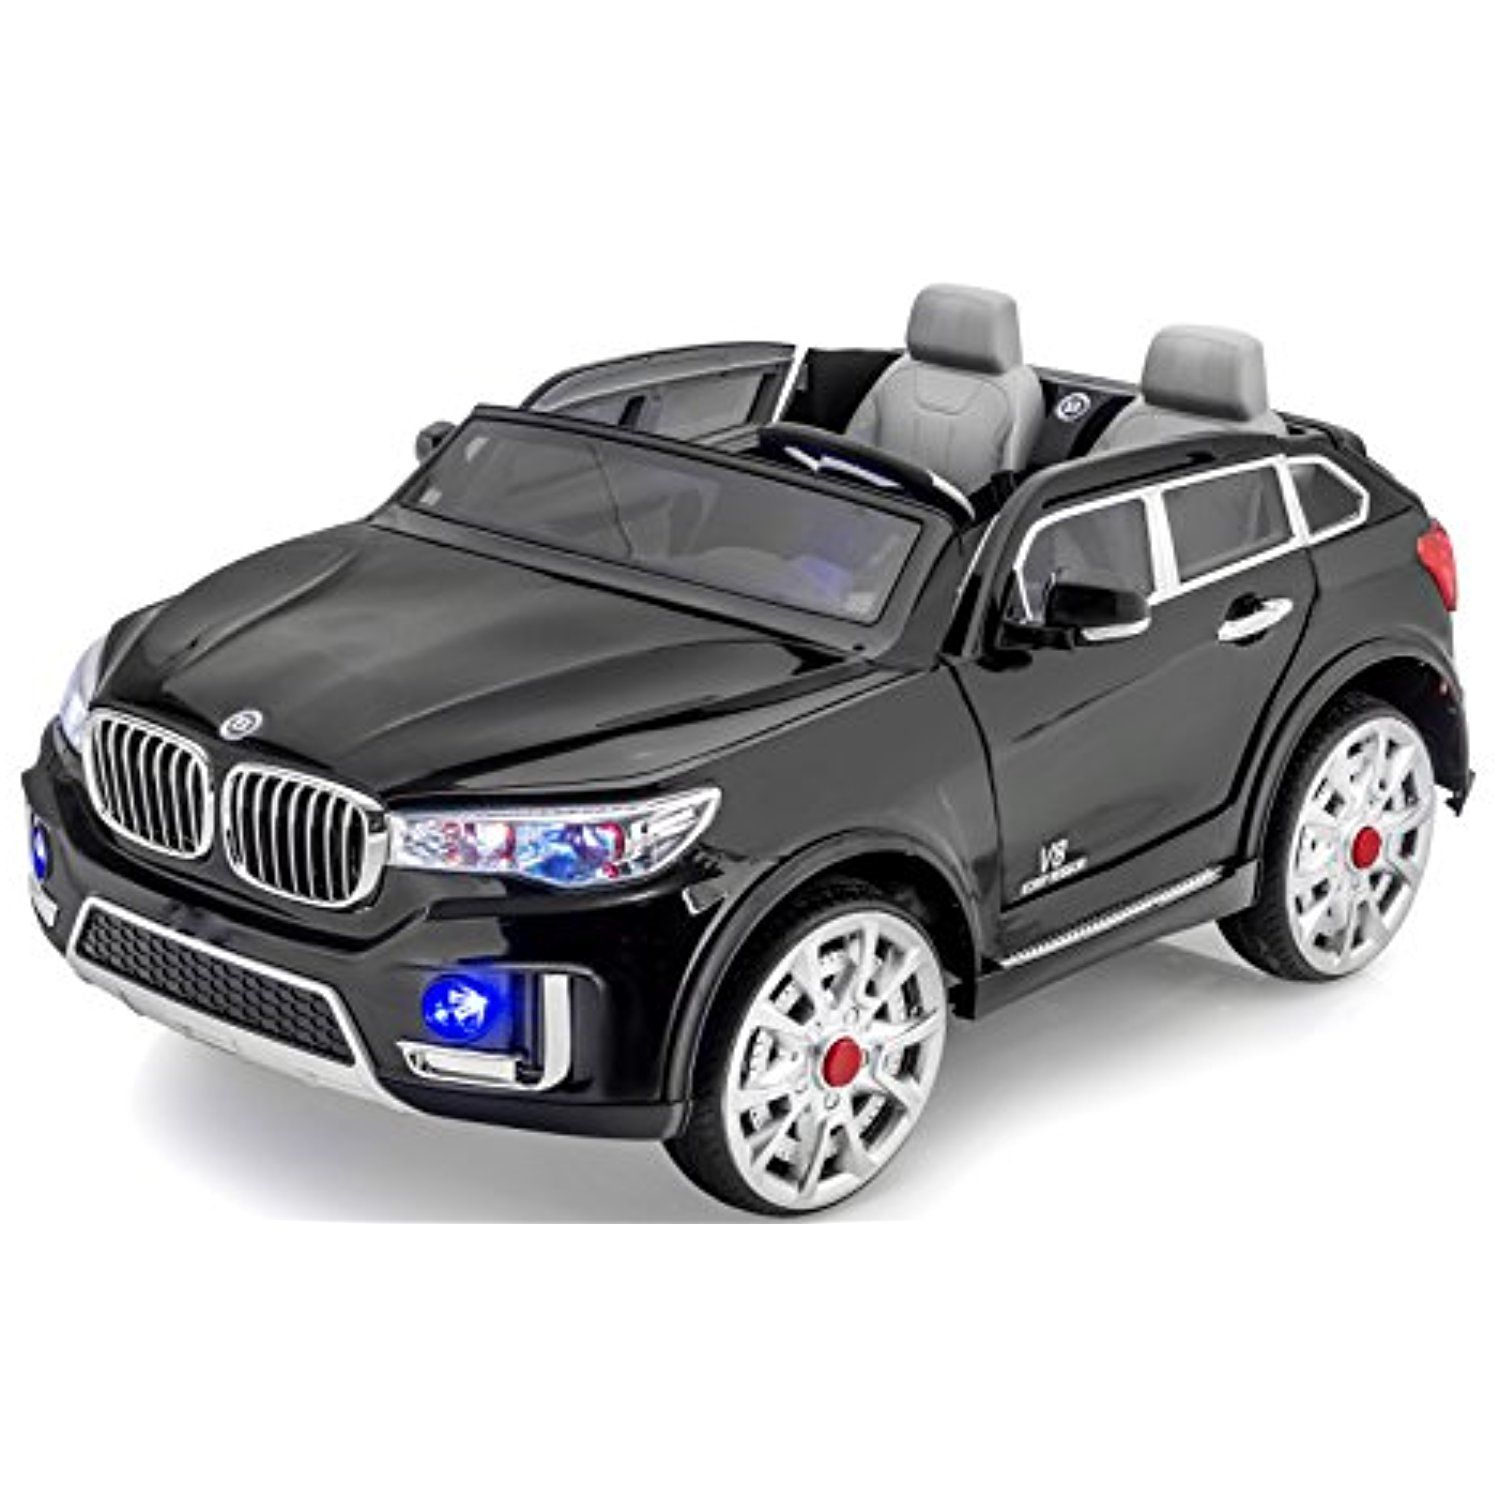 Exclusive edition big bmw x7 kids ride on toy car 2 seats